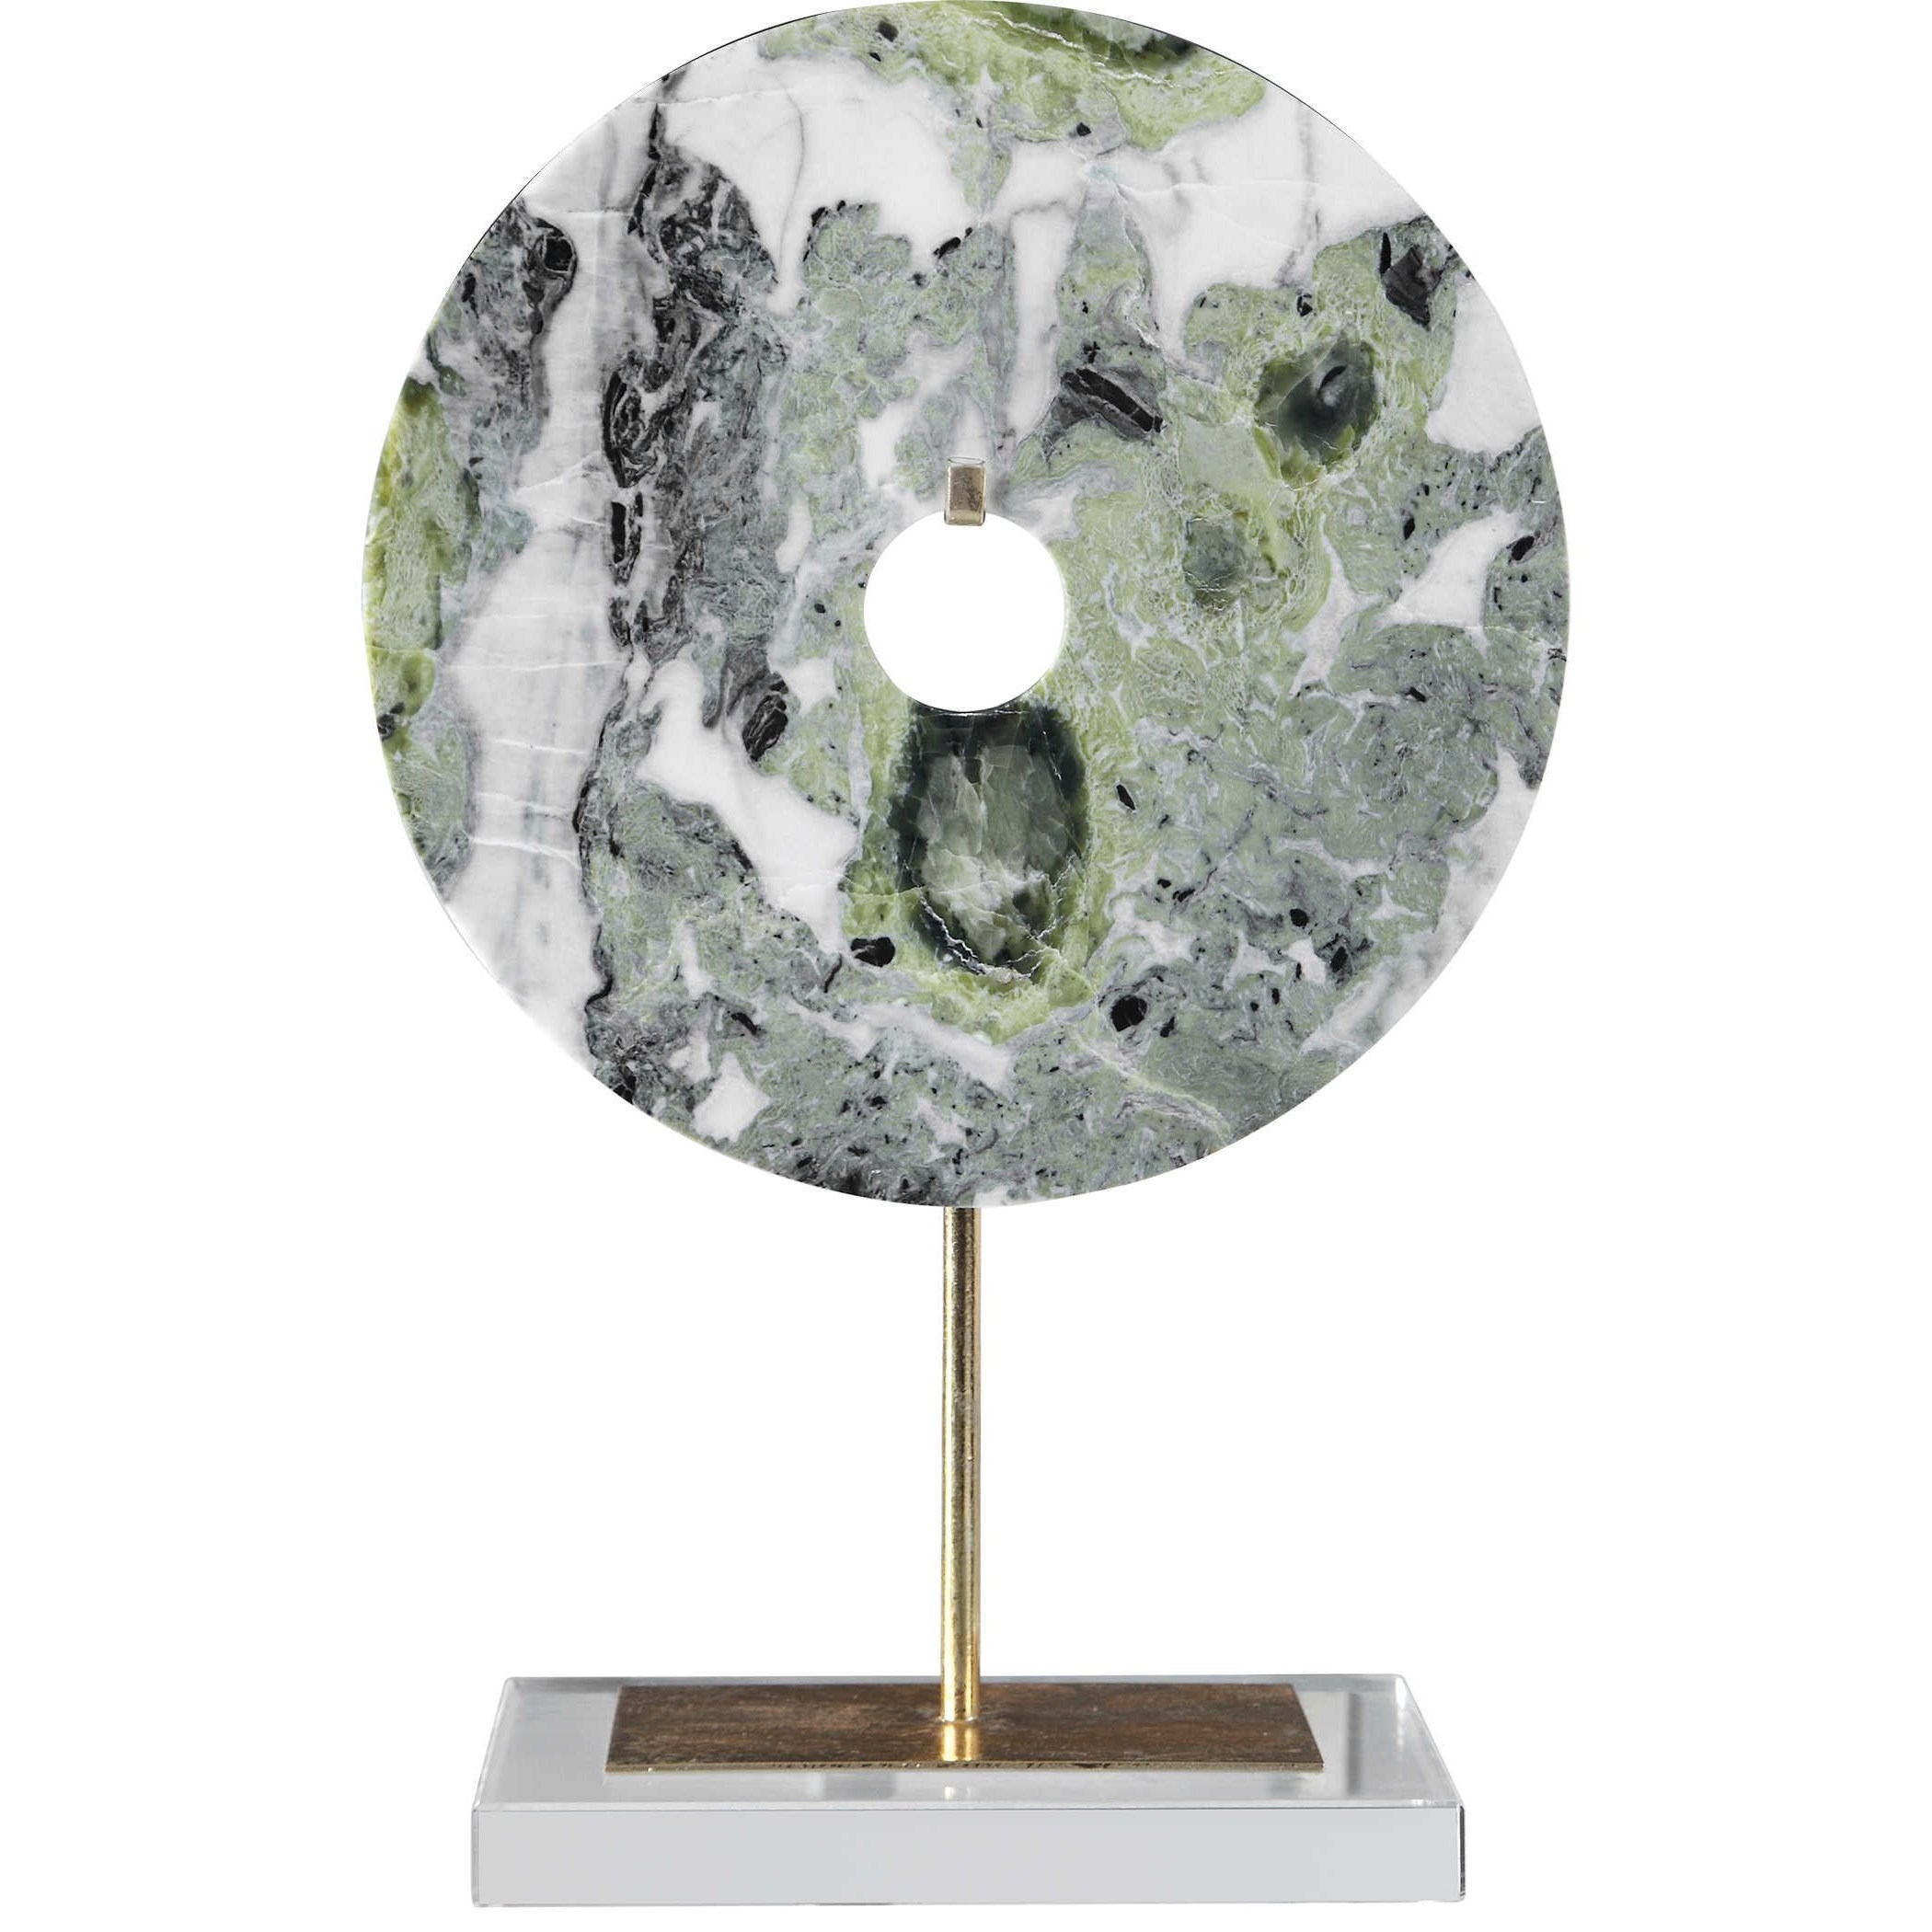 Irelyn Marble Disk Sculpture